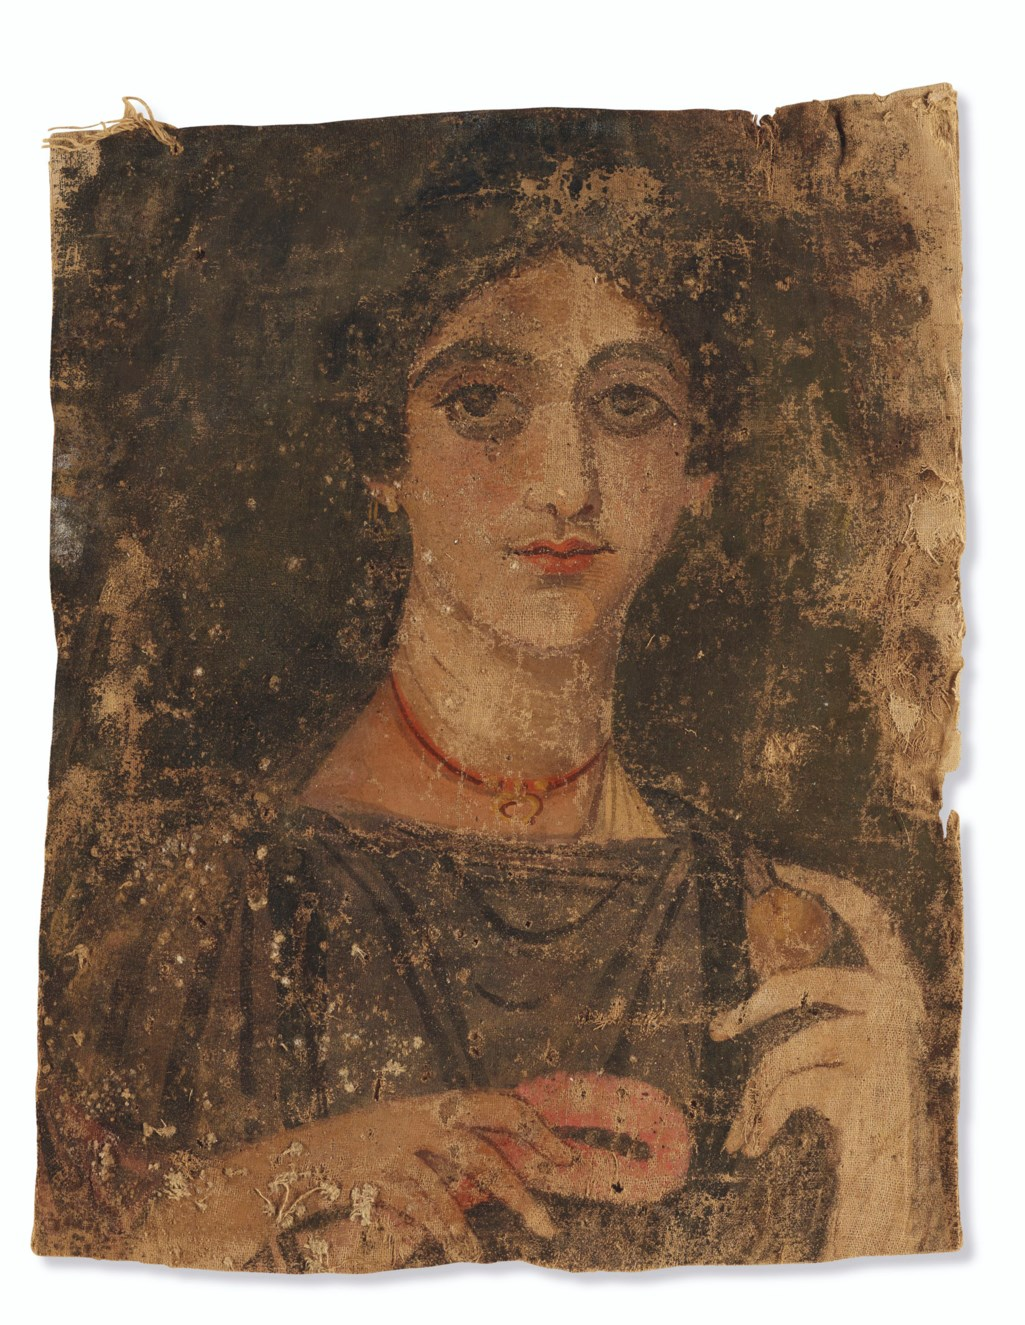 AN EGYPTIAN PAINTED LINEN MUMMY SHROUD WITH A PORTRAIT OF A WOMAN